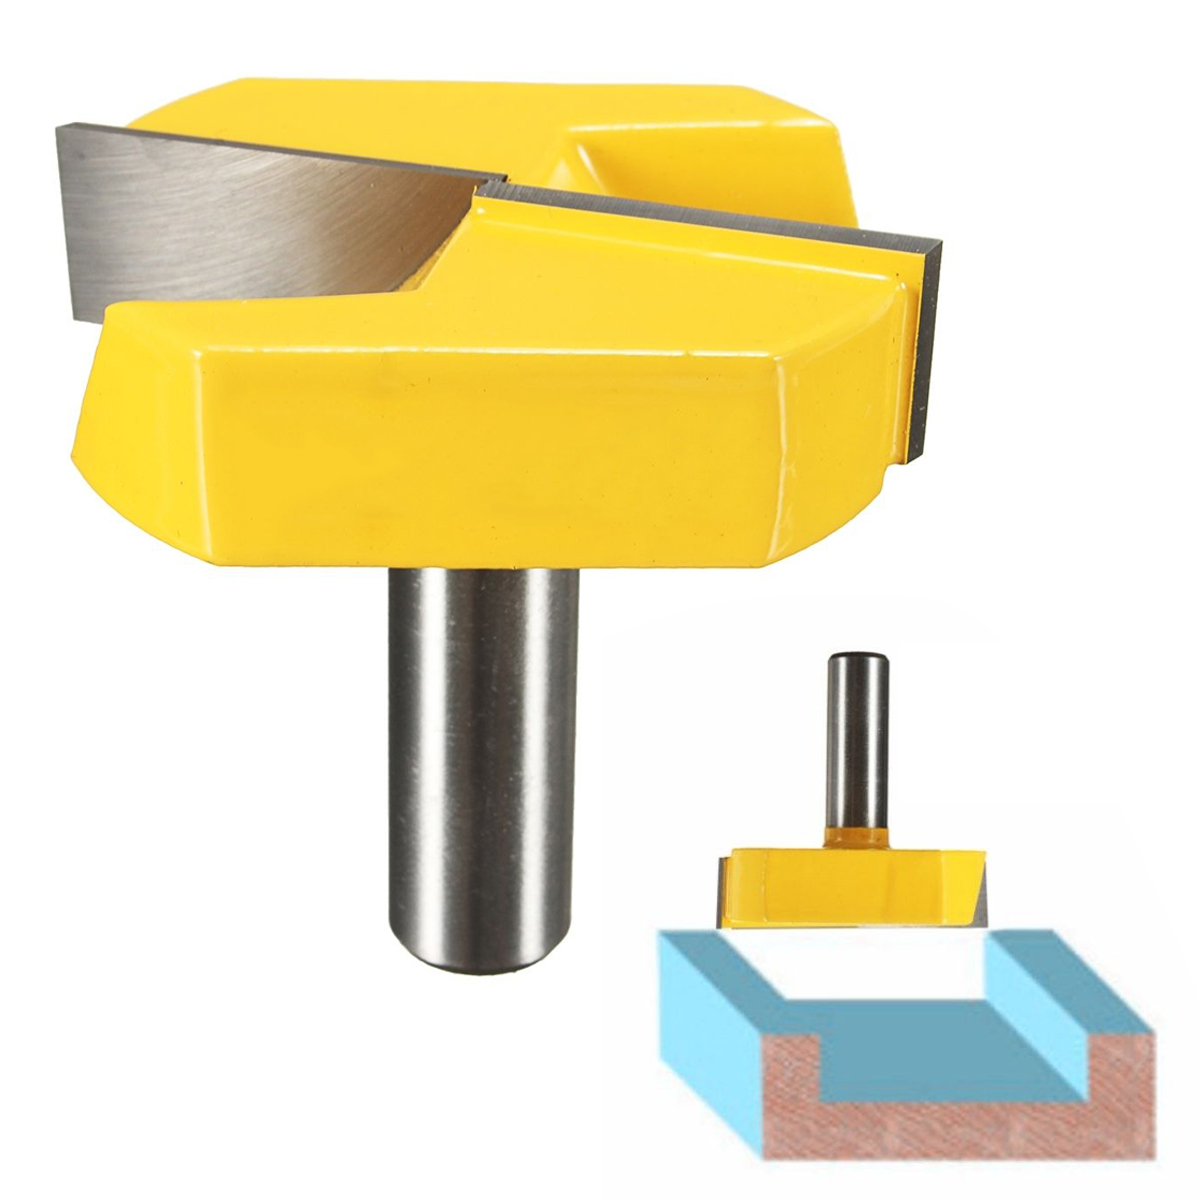 Strong 1/2 Shank 2-1/4 Diameter Bottom Cleaning Router Bit Mayitr Woodworking Router Bits Milling Cutter for MDF Solid Wood 1pc cleaning bottom router bit cutter cnc woodworking clean bits 1 2 shank dia